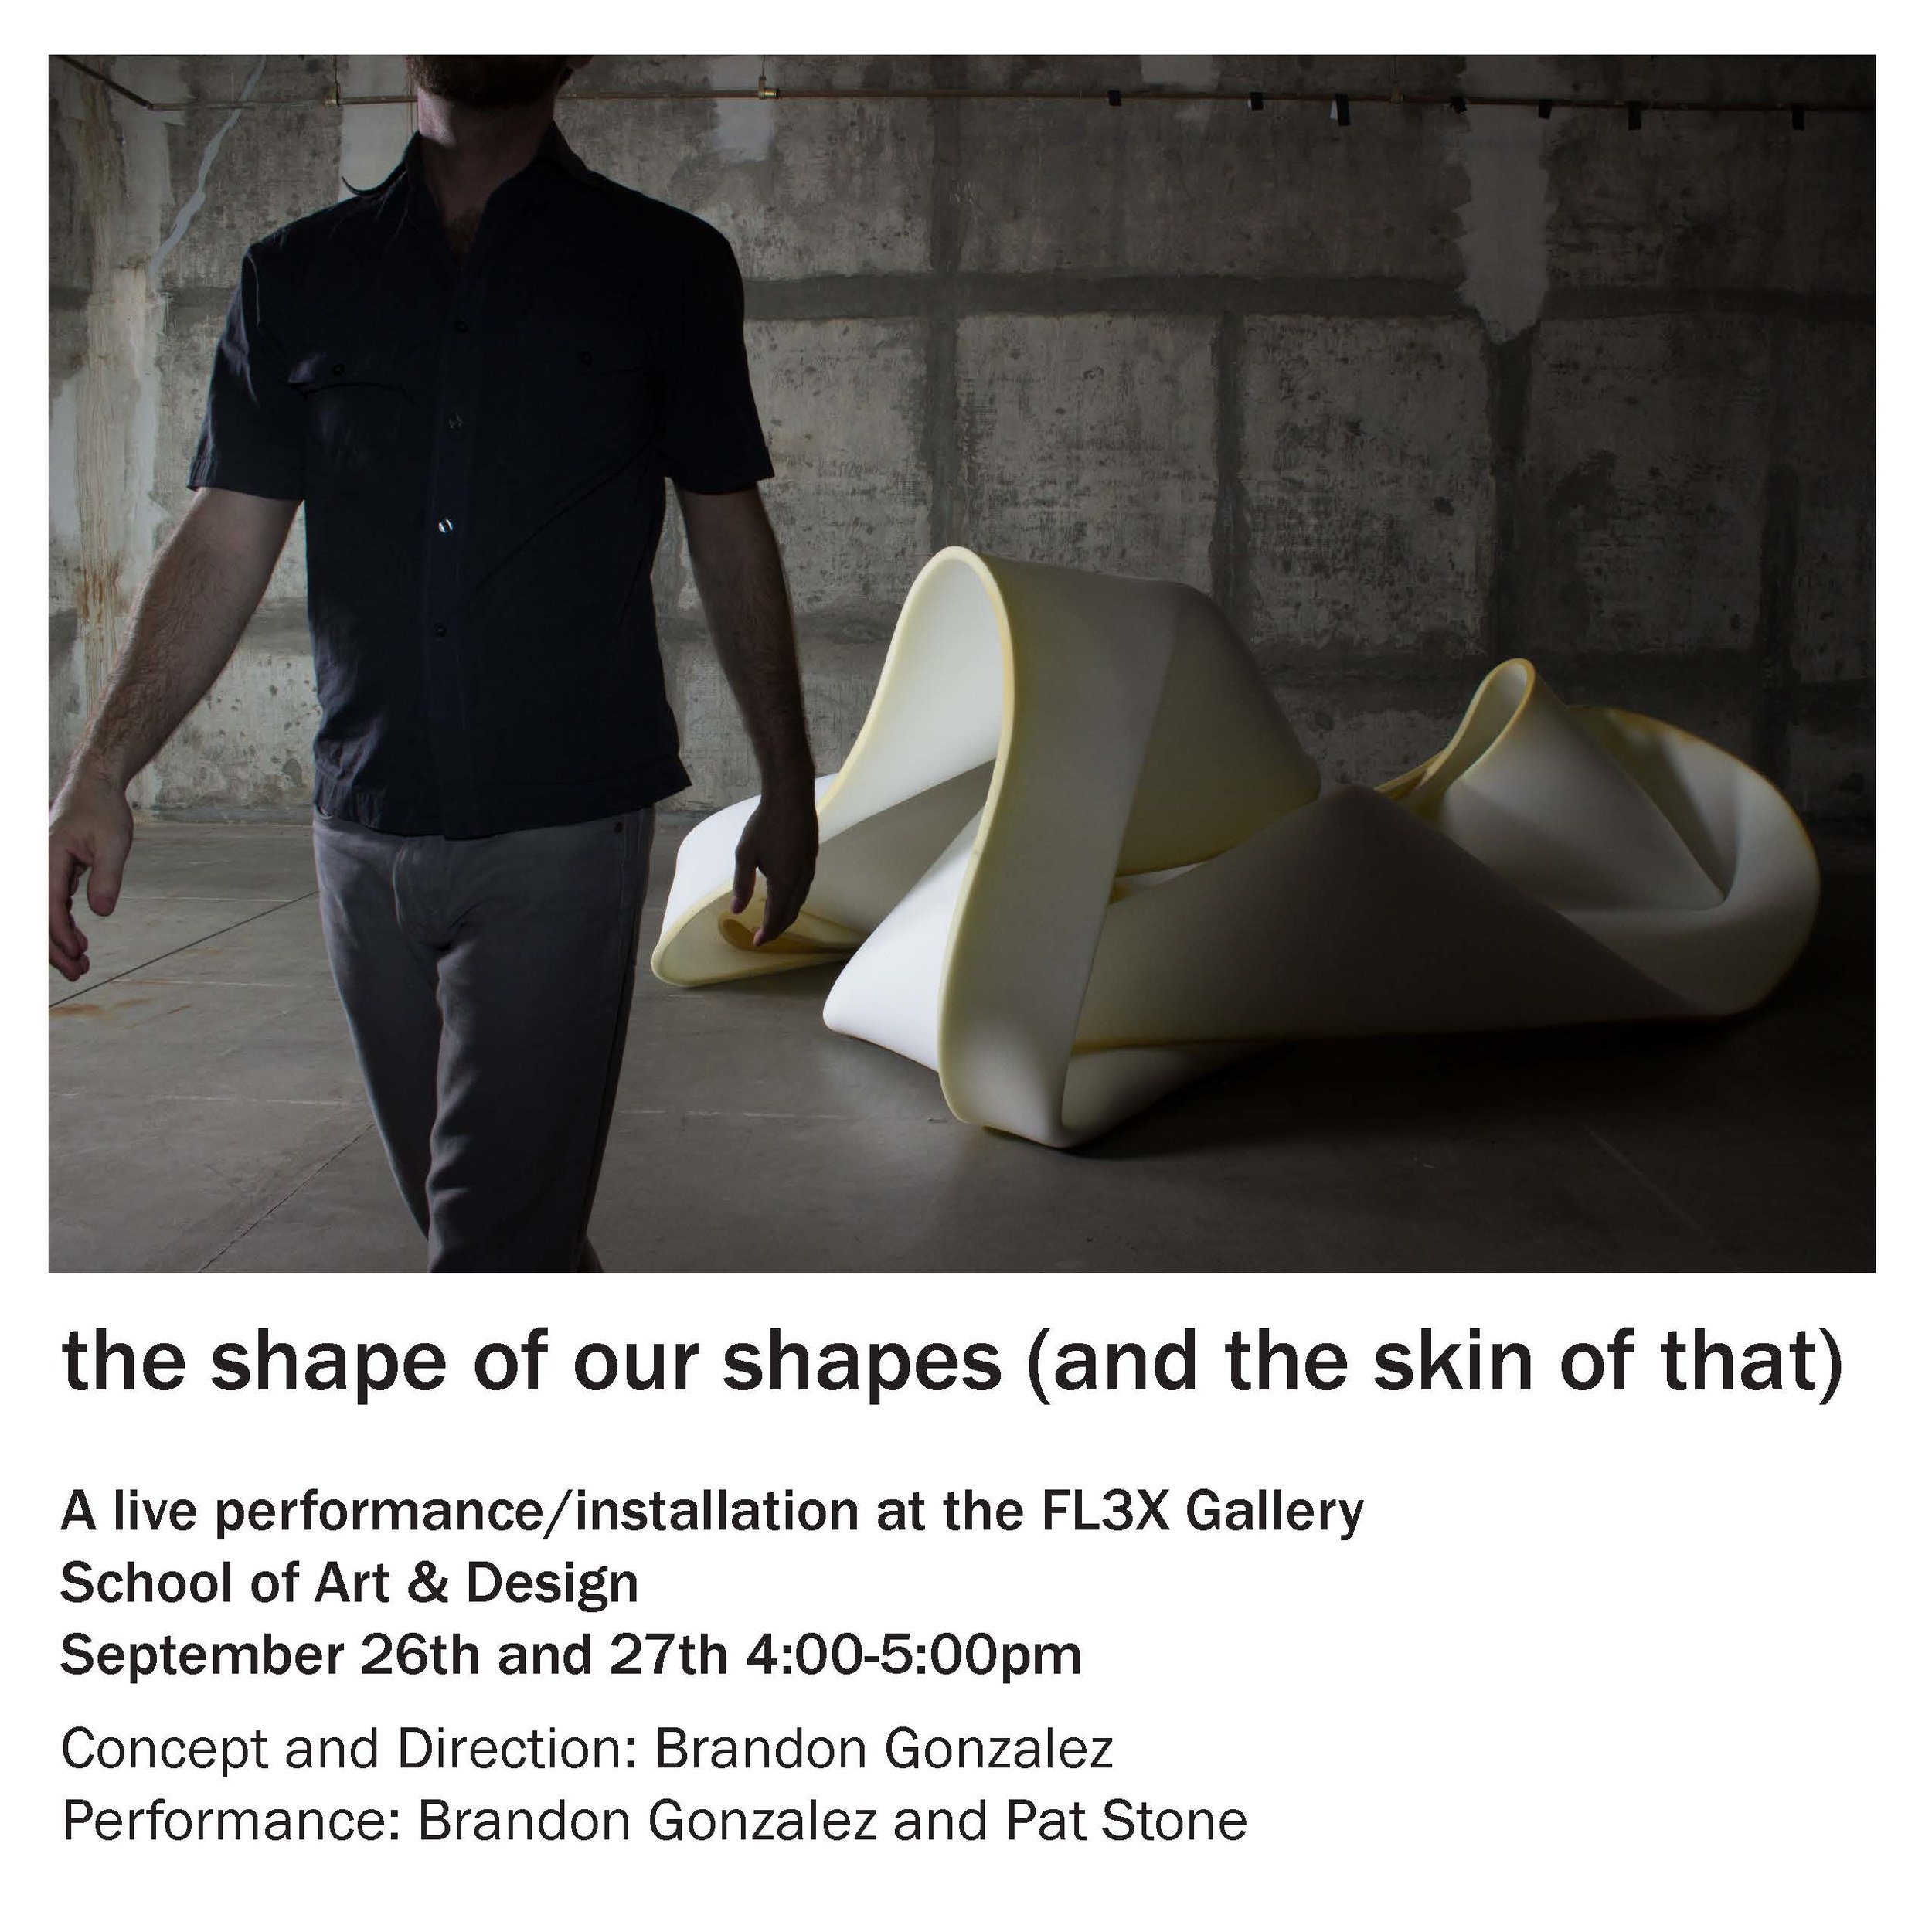 The Shape of Our Lives (And the Skin of That) (Brandon Gonzalez), FLEX space exhibition and performances, On view September 26–September 27